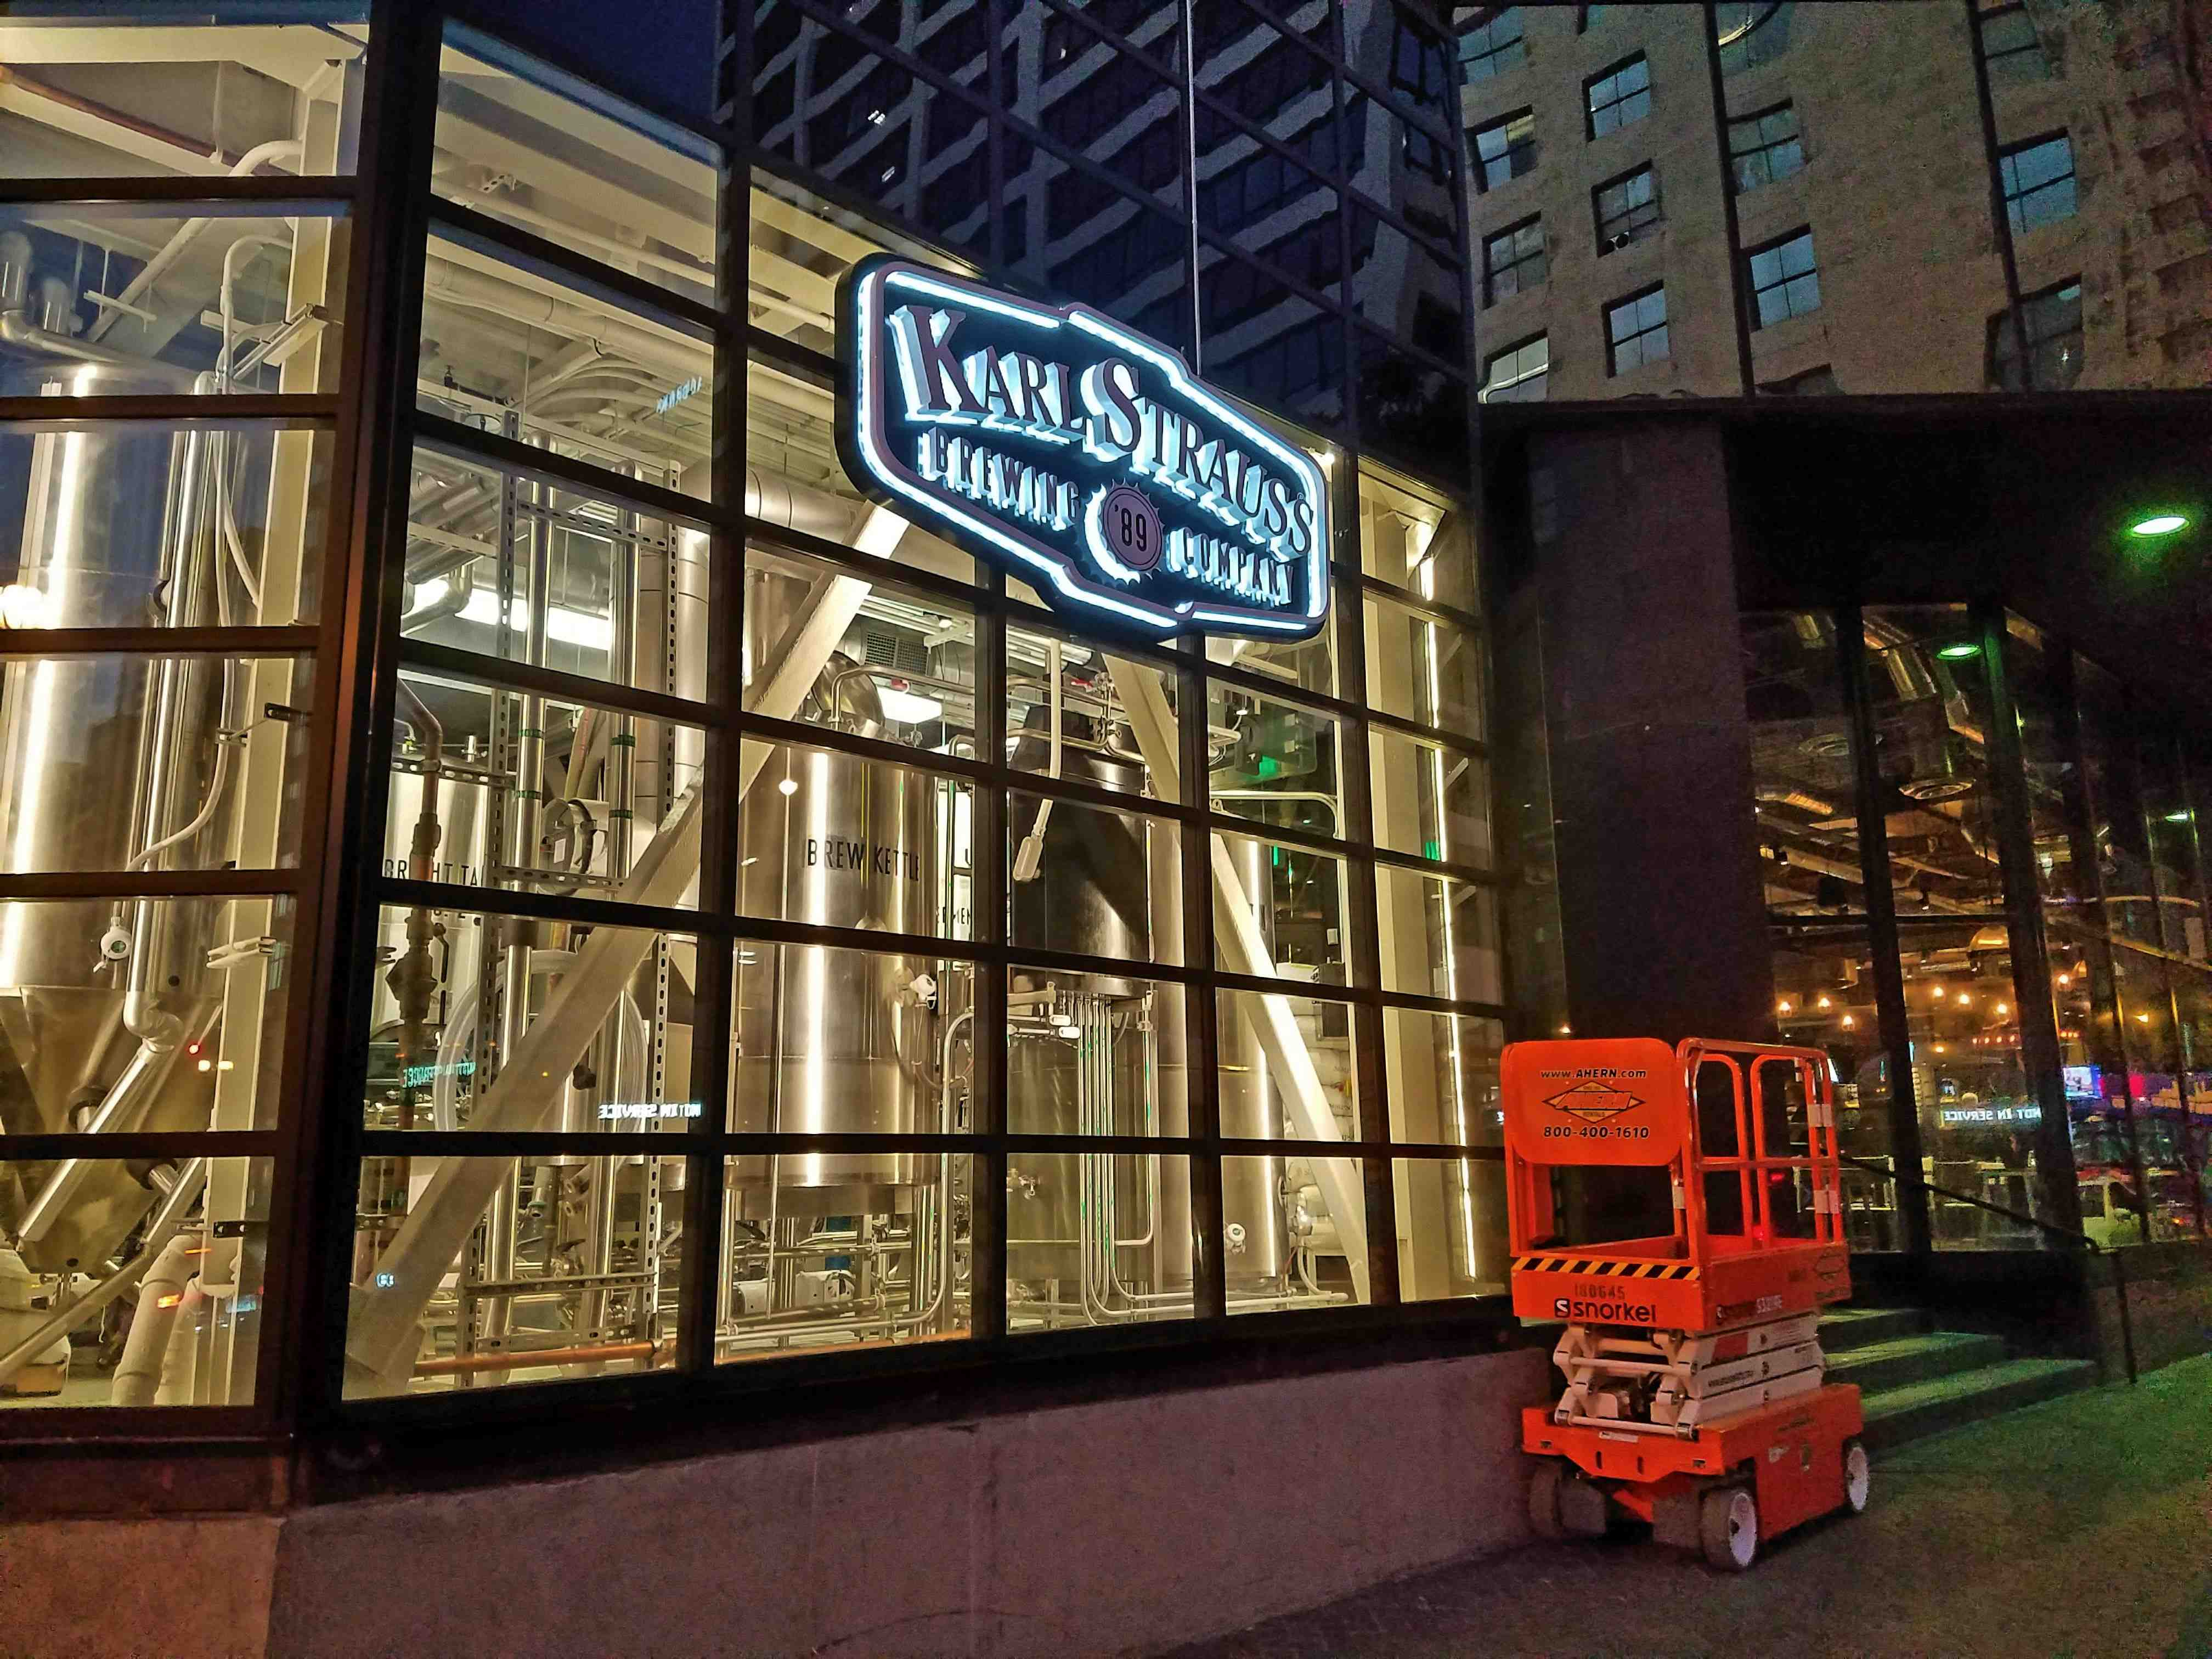 Karl Strauss has opened a massive 13,500 SF brewery here in Downtown LA's Financial District